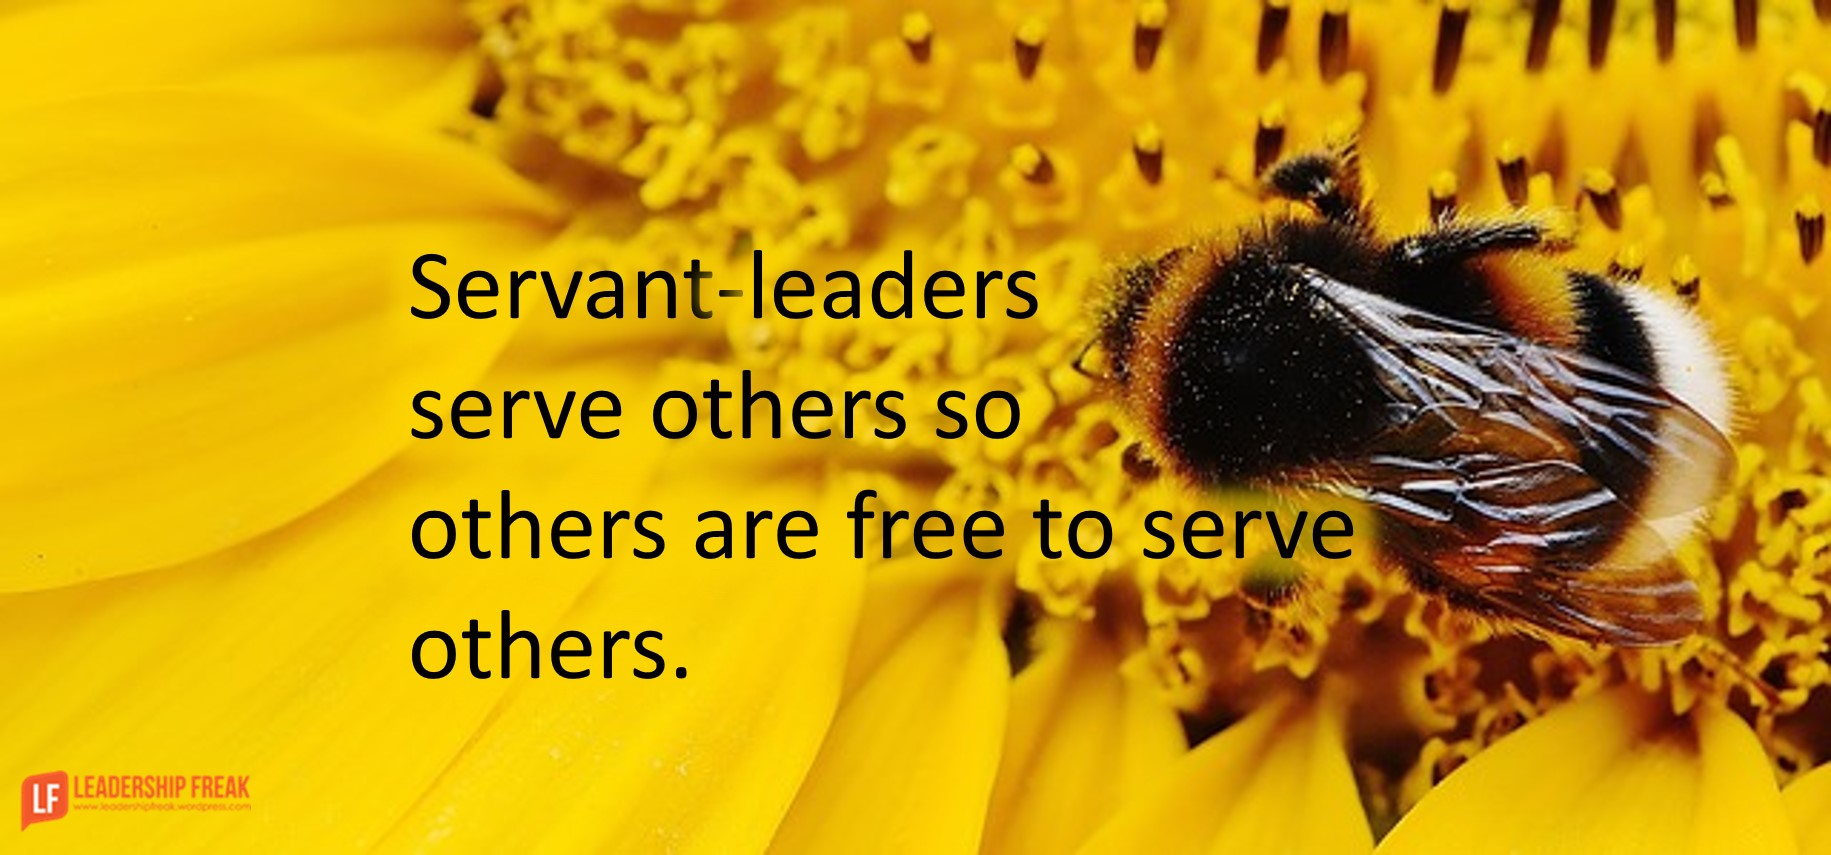 ways servant leaders serve others so others are to serve servant leaders serve others so others are